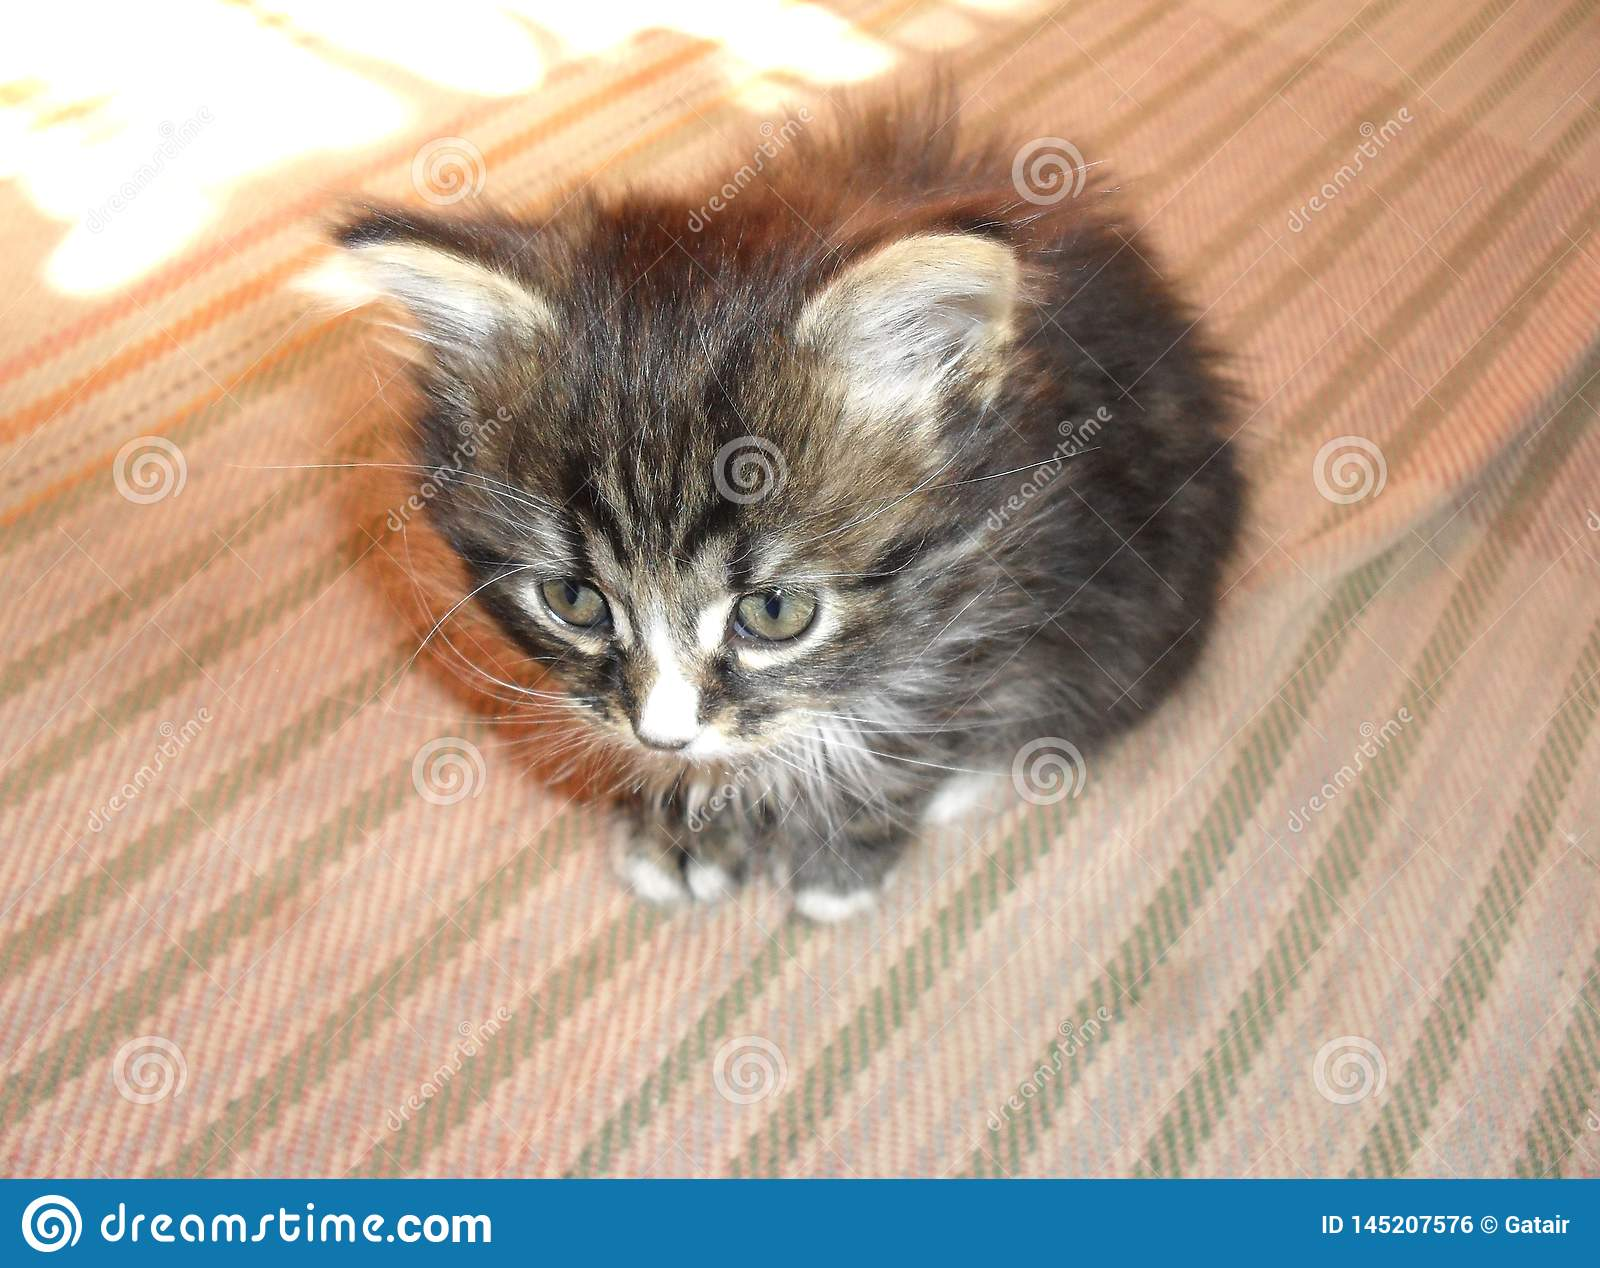 Cute little striped gray fluffy kitten adorable